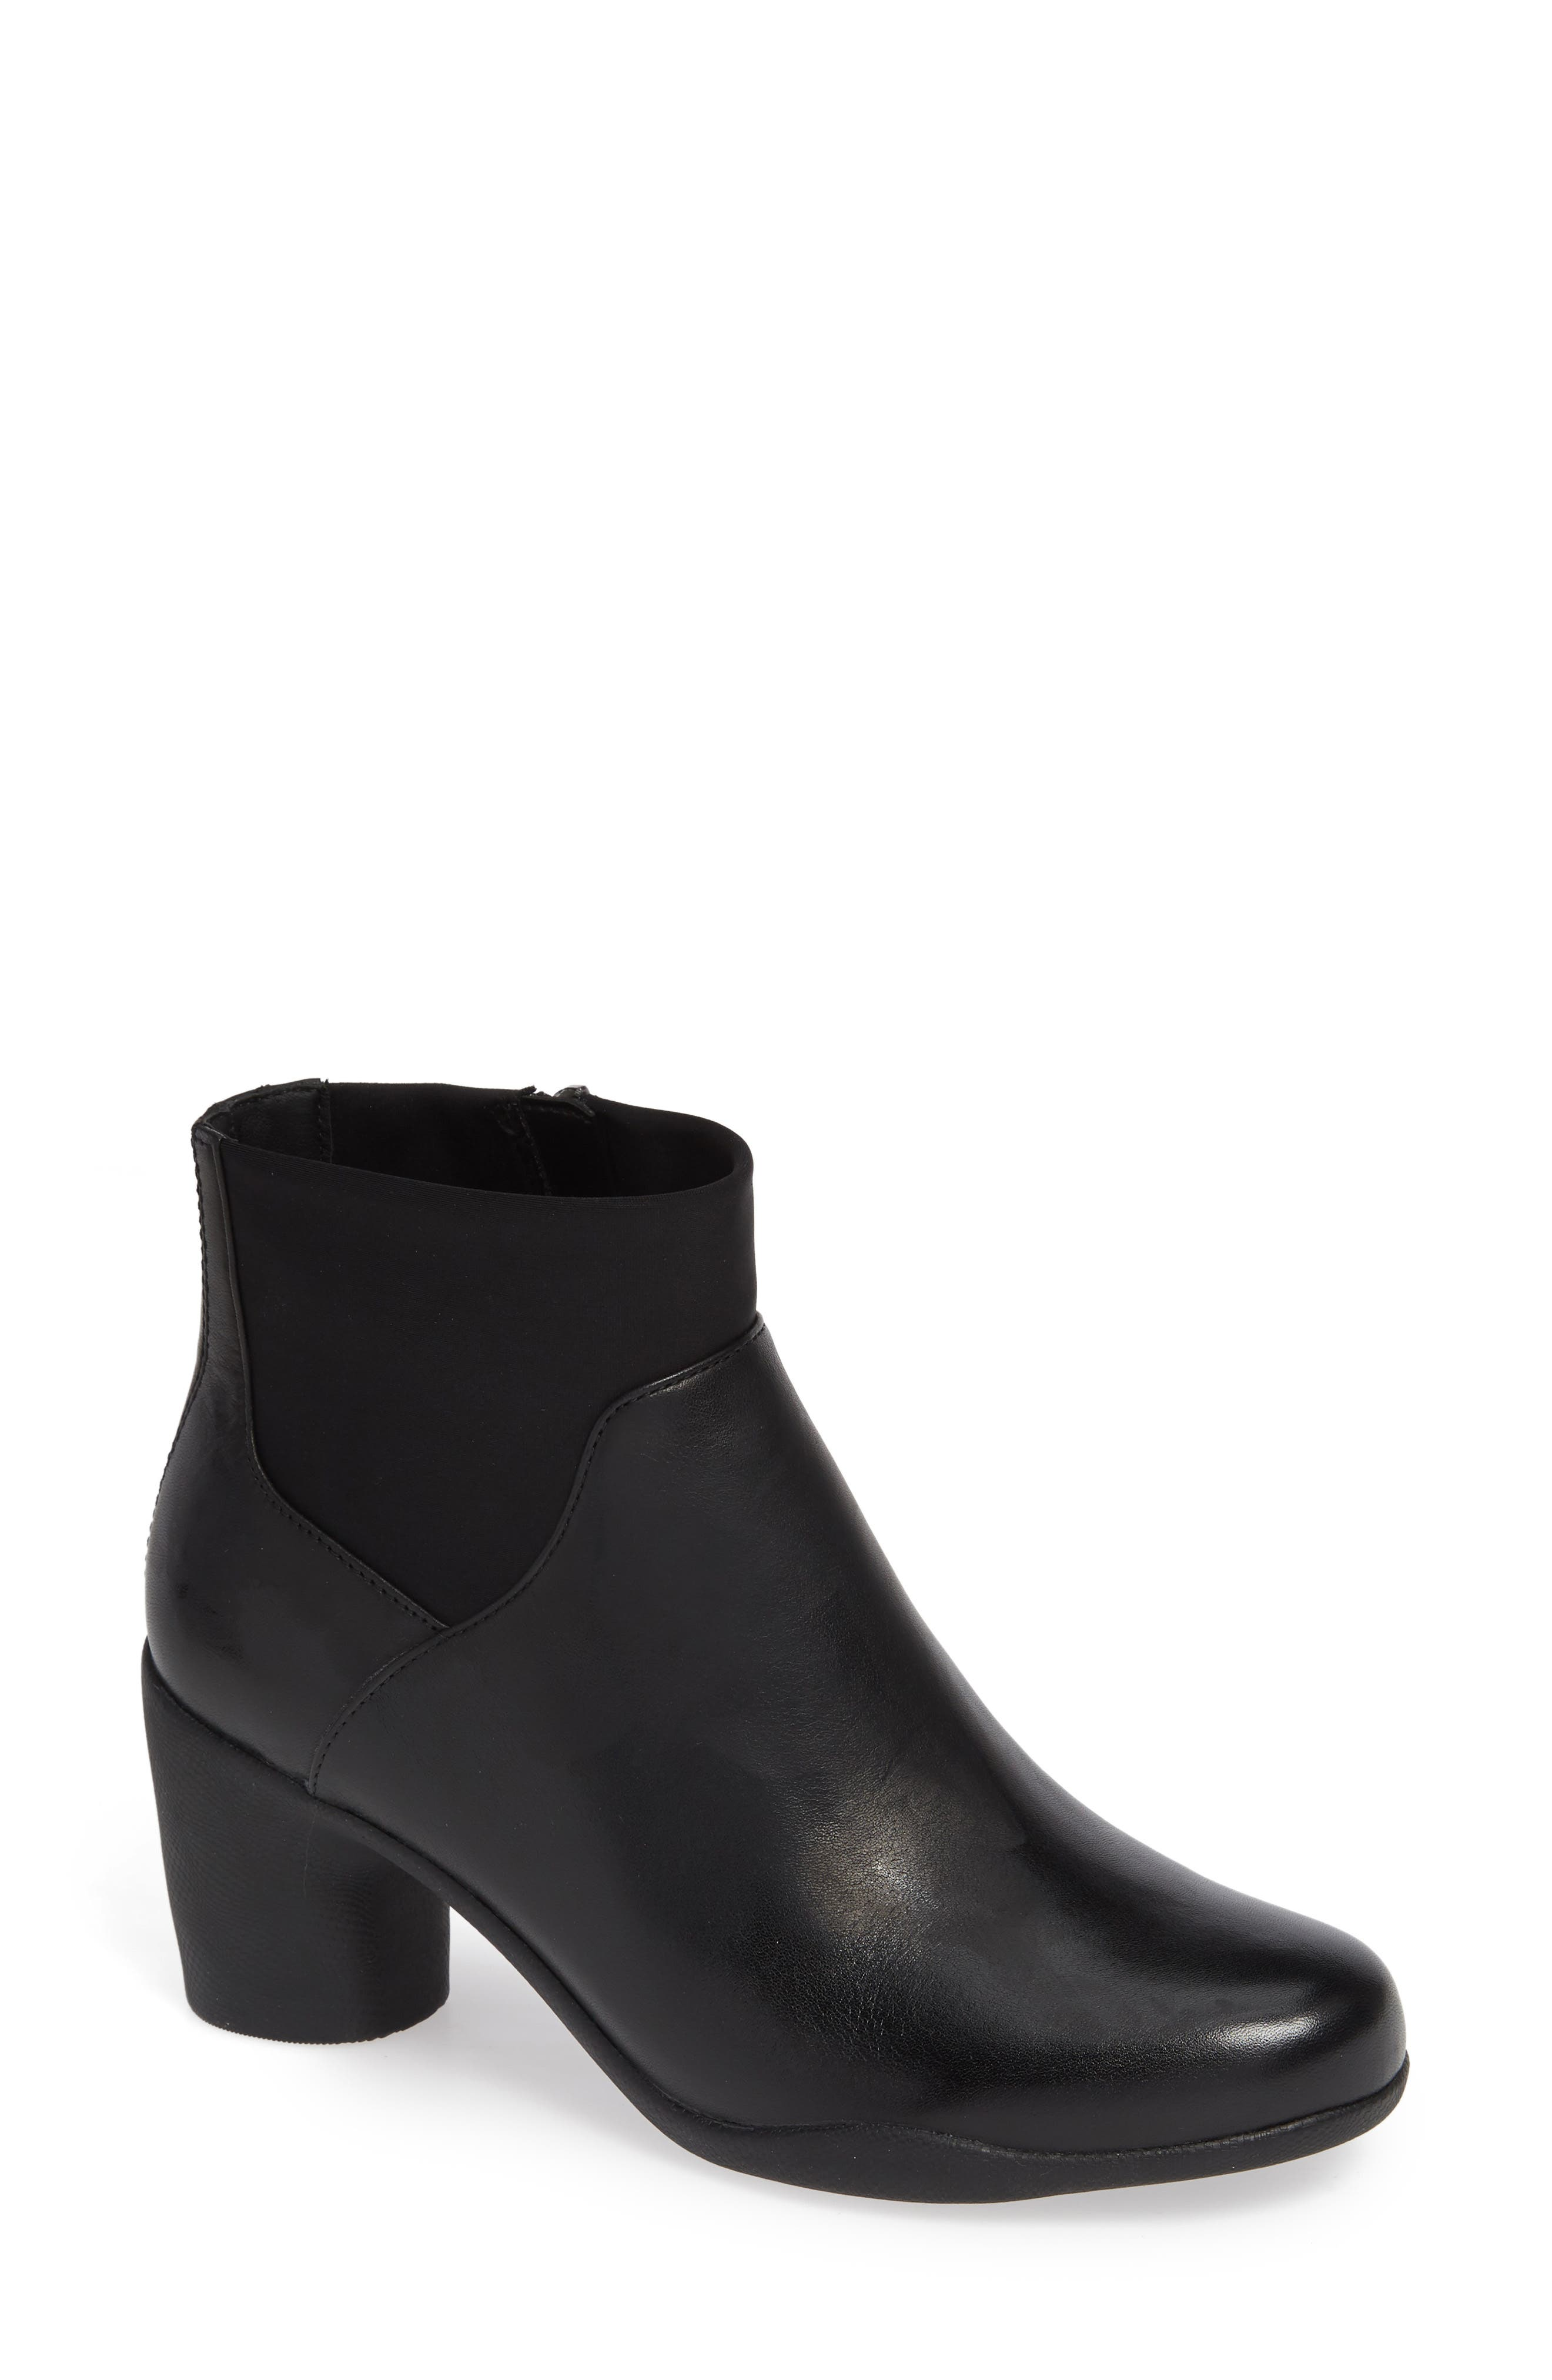 Clarks Un Rose Mid Ankle Boot,                         Main,                         color, BLACK LEATHER